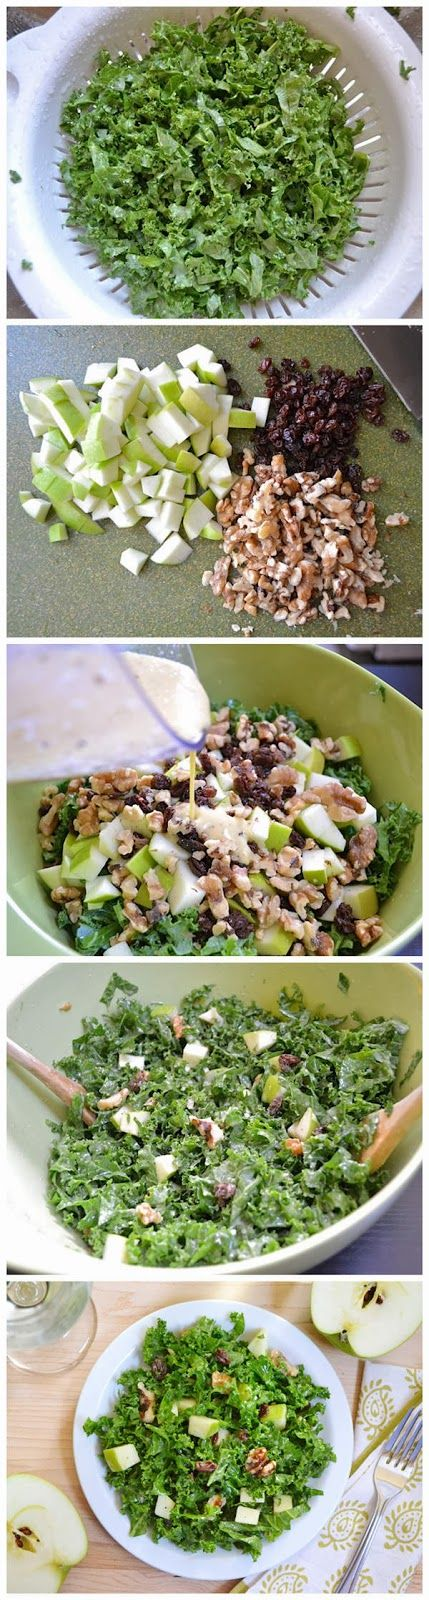 Apple Dijon Kale Salad - heaven in a bowl! PLEASE NOTE THAT THIS RECIPE SHOULD READ: 1/4 cup GOLDEN raisins, 1/3 cup olive oil and 1/4 cup vinegar, and I/2 cup walnuts